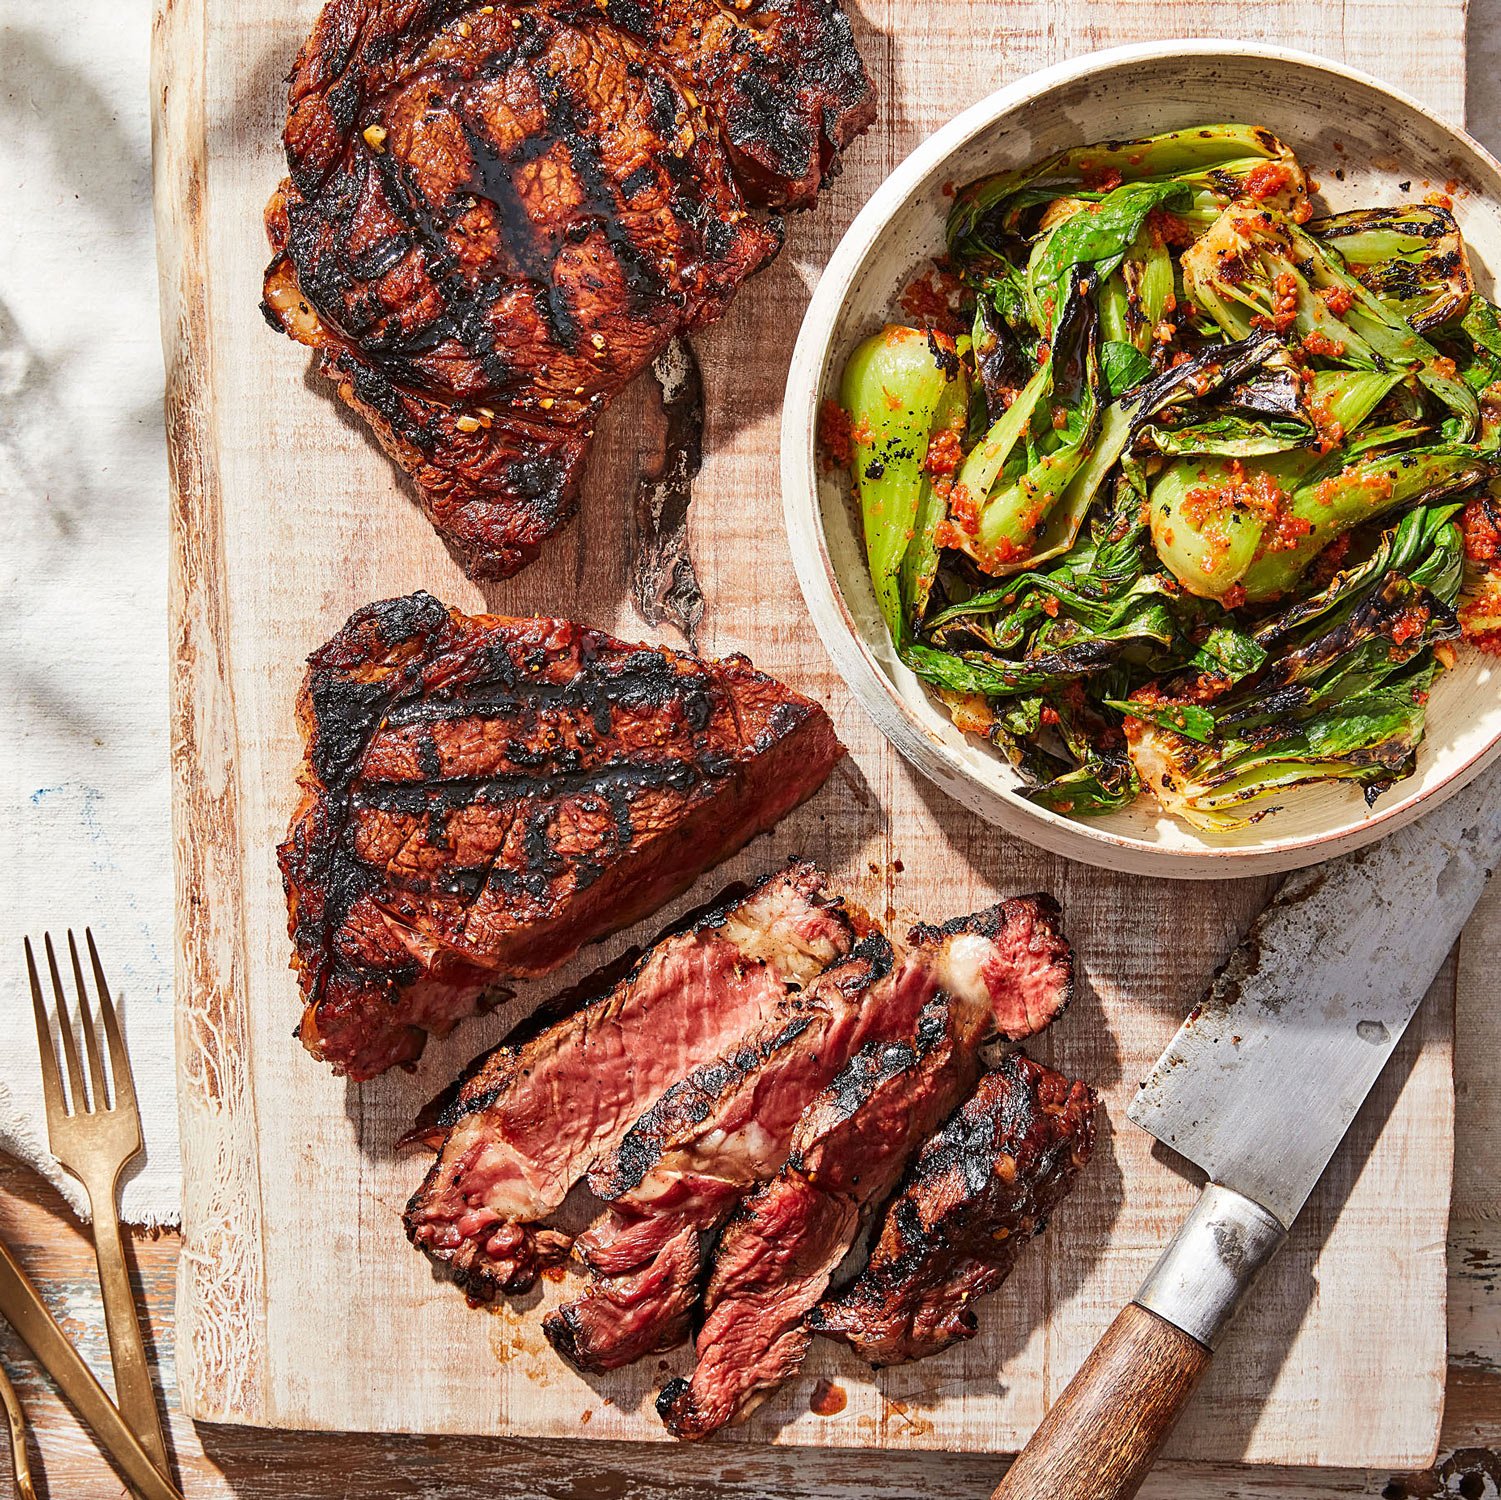 Soy-and-BrownSugar-Grilled Ribeye Steaks with Spicy Grilled Bok Choy